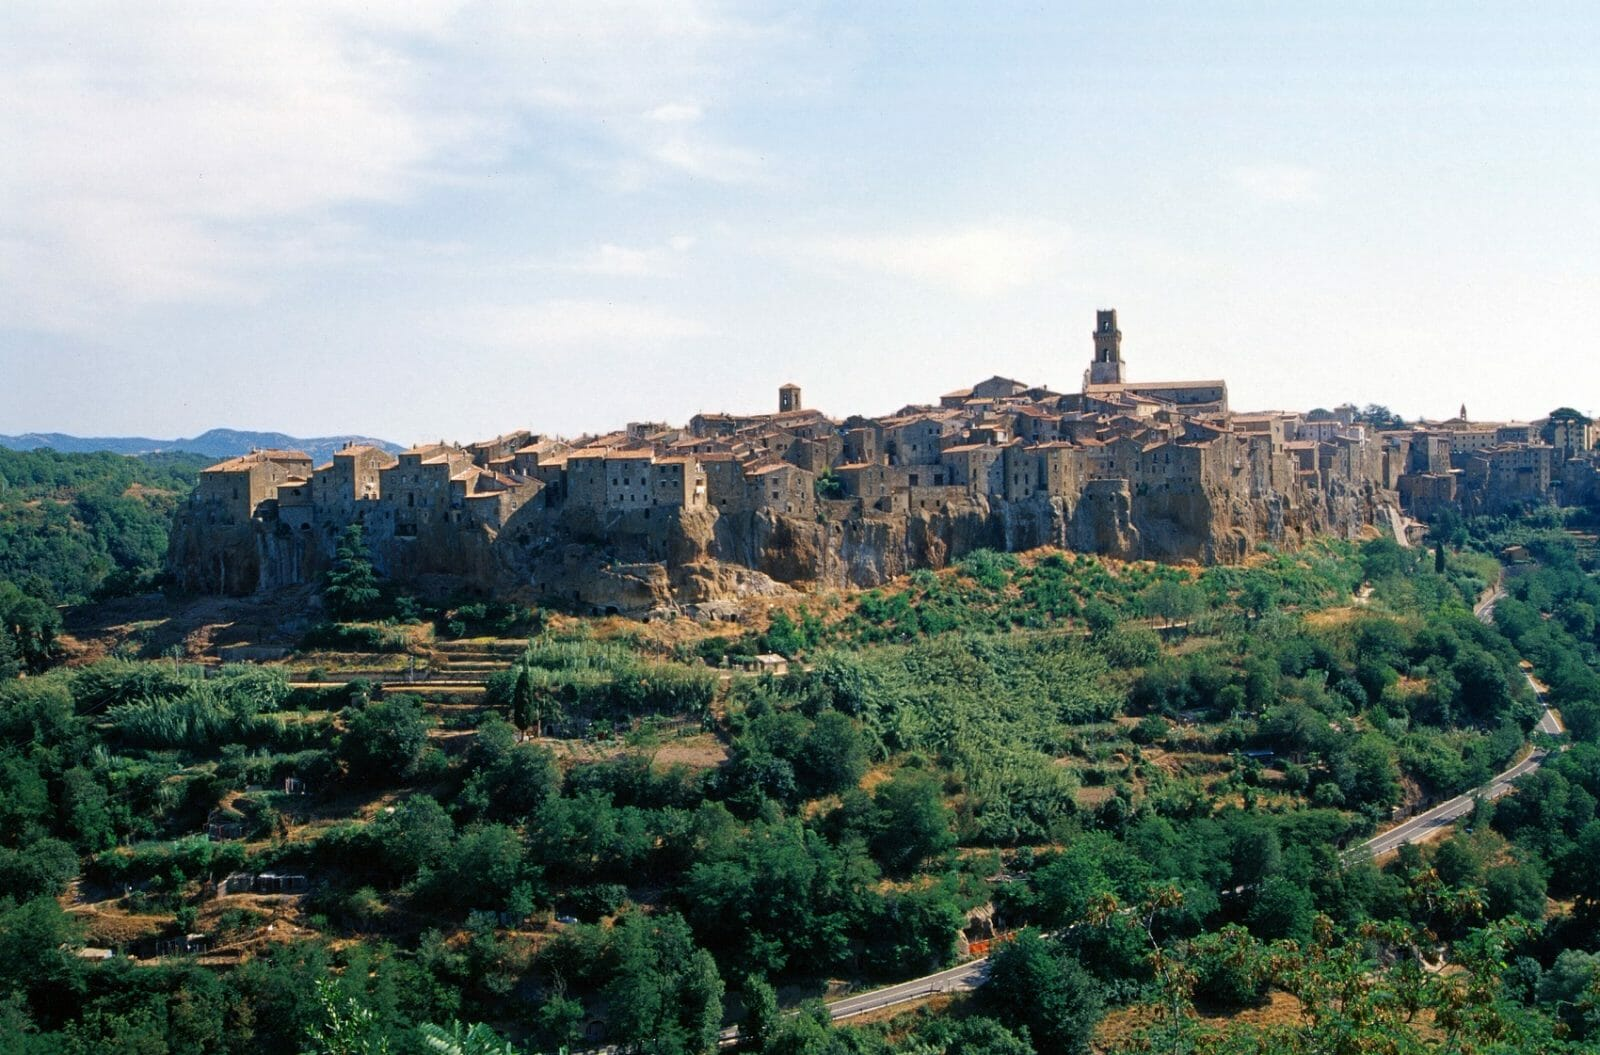 Pitigliano (Grosseto, Tuscany, Italy) - View of the ancient town